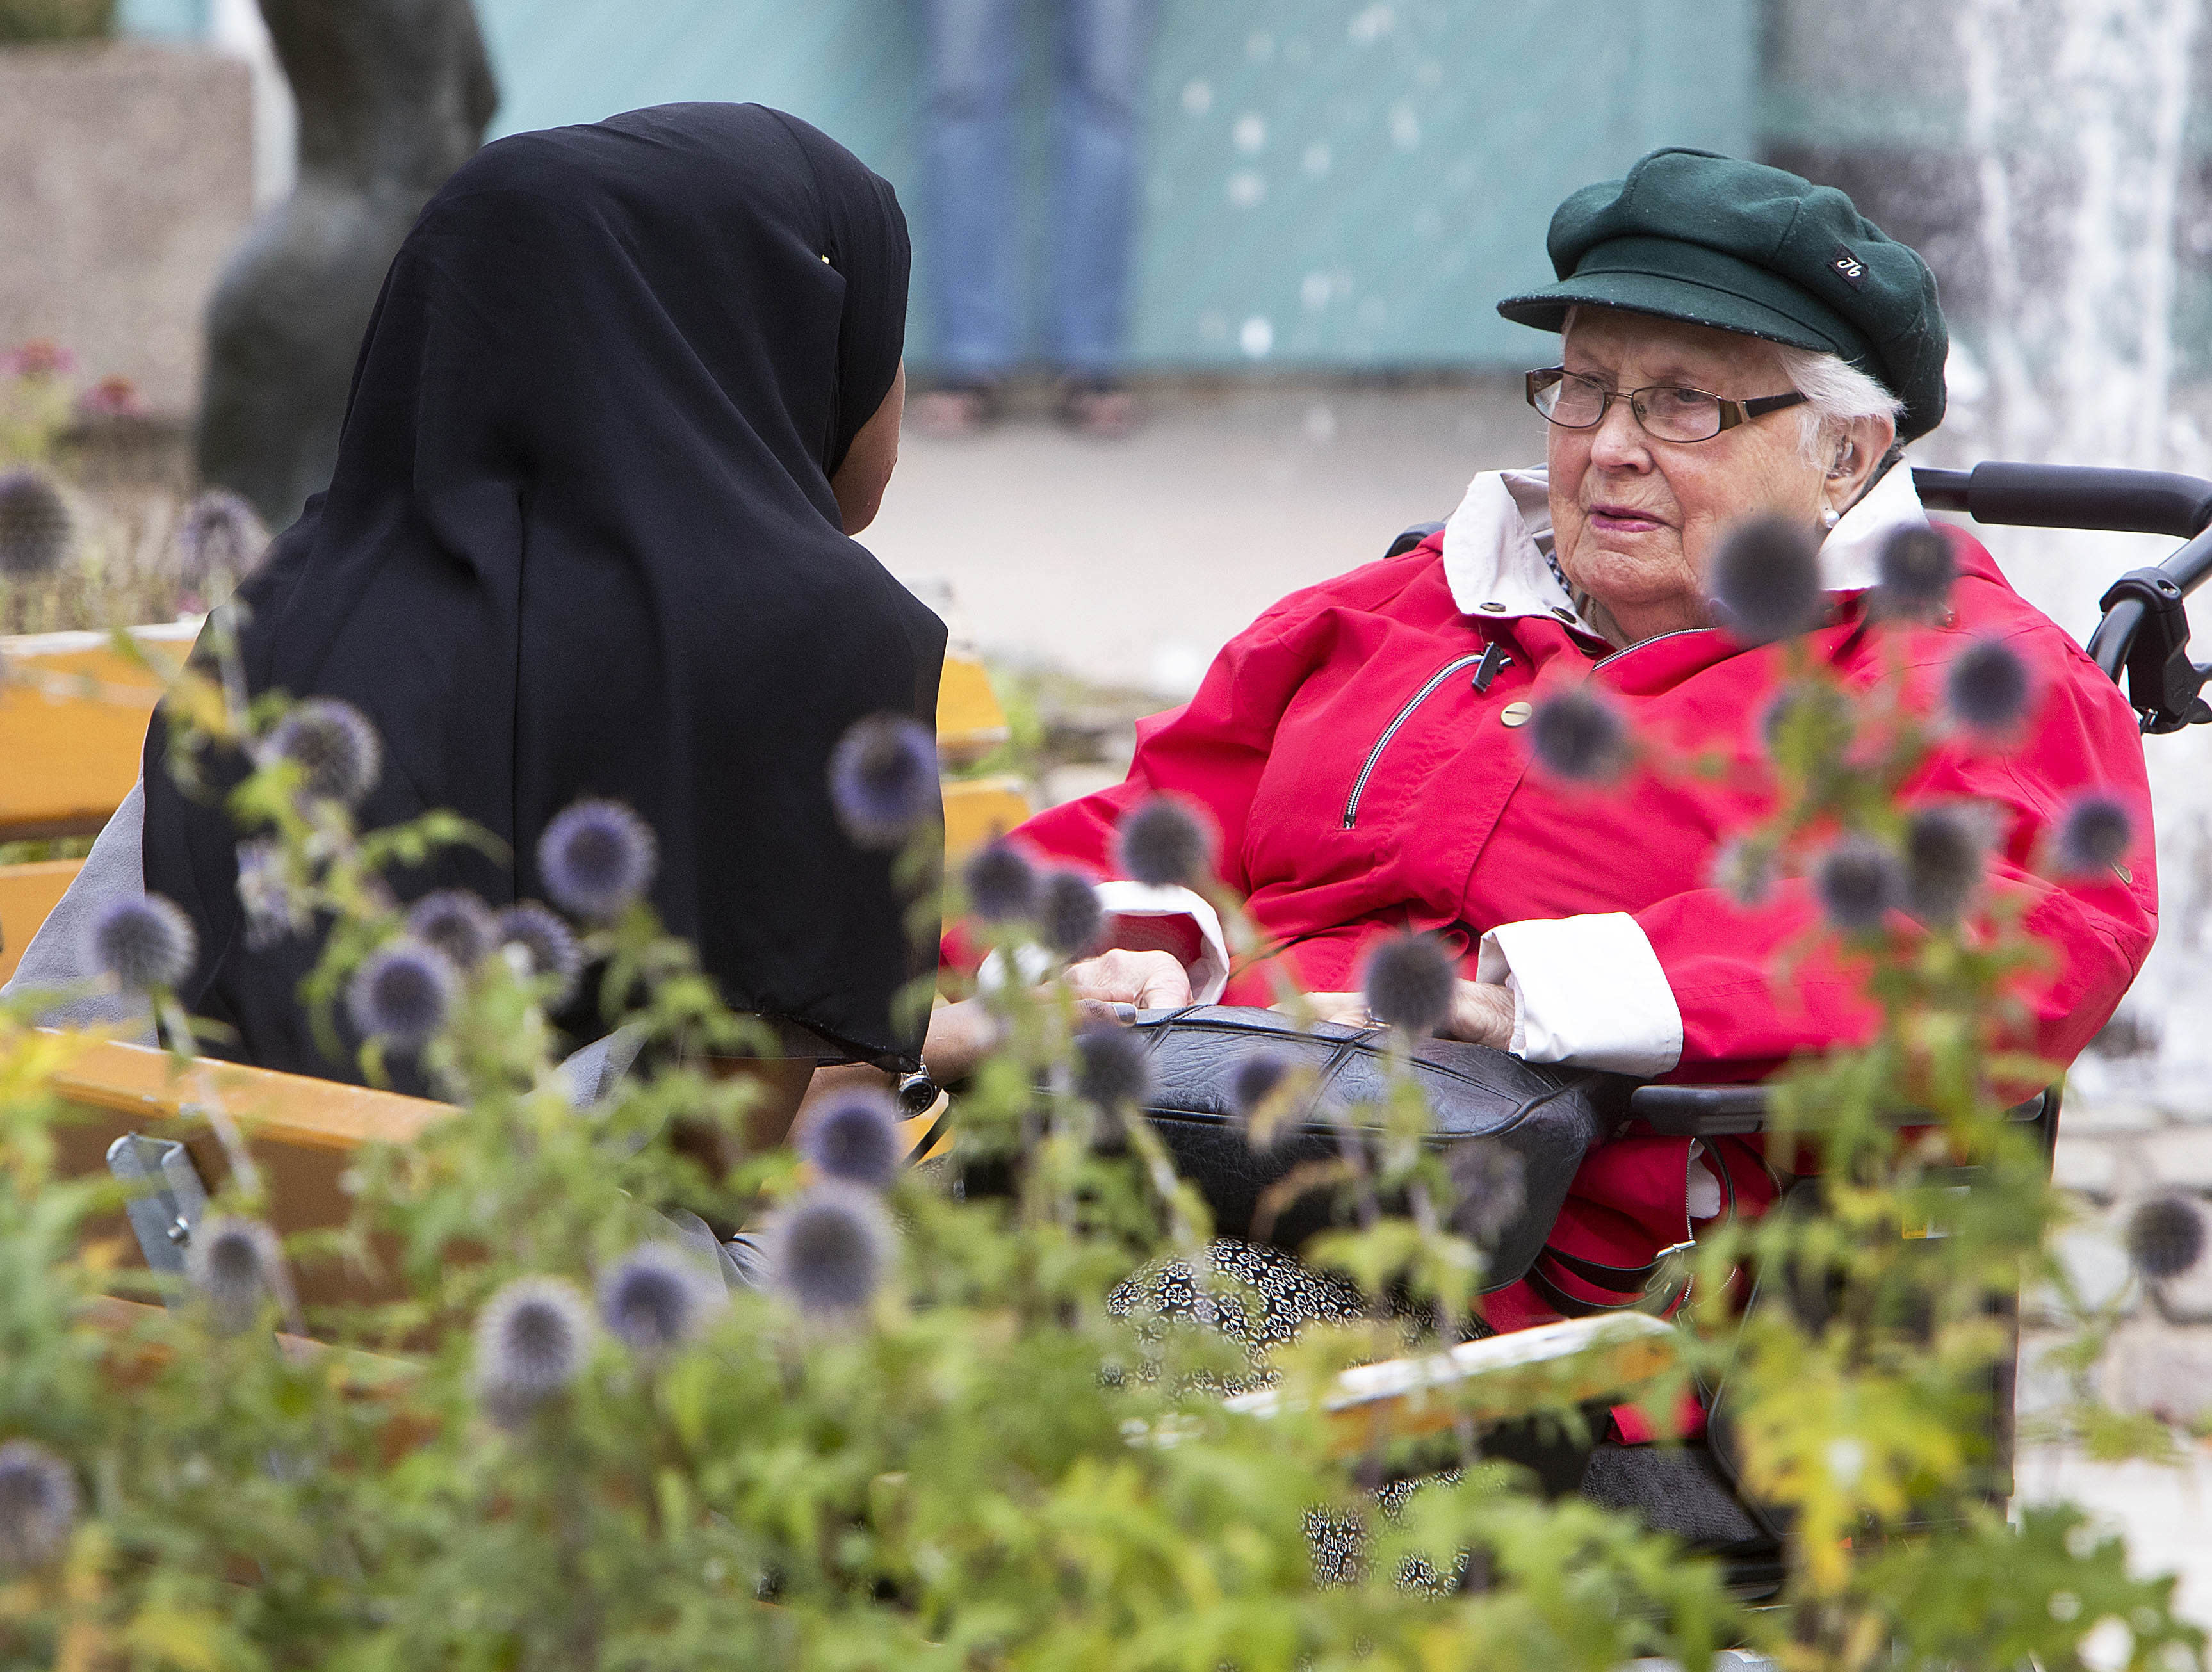 In this Aug. 30, 2018 photo a young migrant from Africa talks to an old woman she is taking care of in Flen, some 100 km west of Stockholm, Sweden. The town has welcomed so many asylum seekers in recent years that they now make up about a fourth of the population. (AP Photo/Michael Probst)